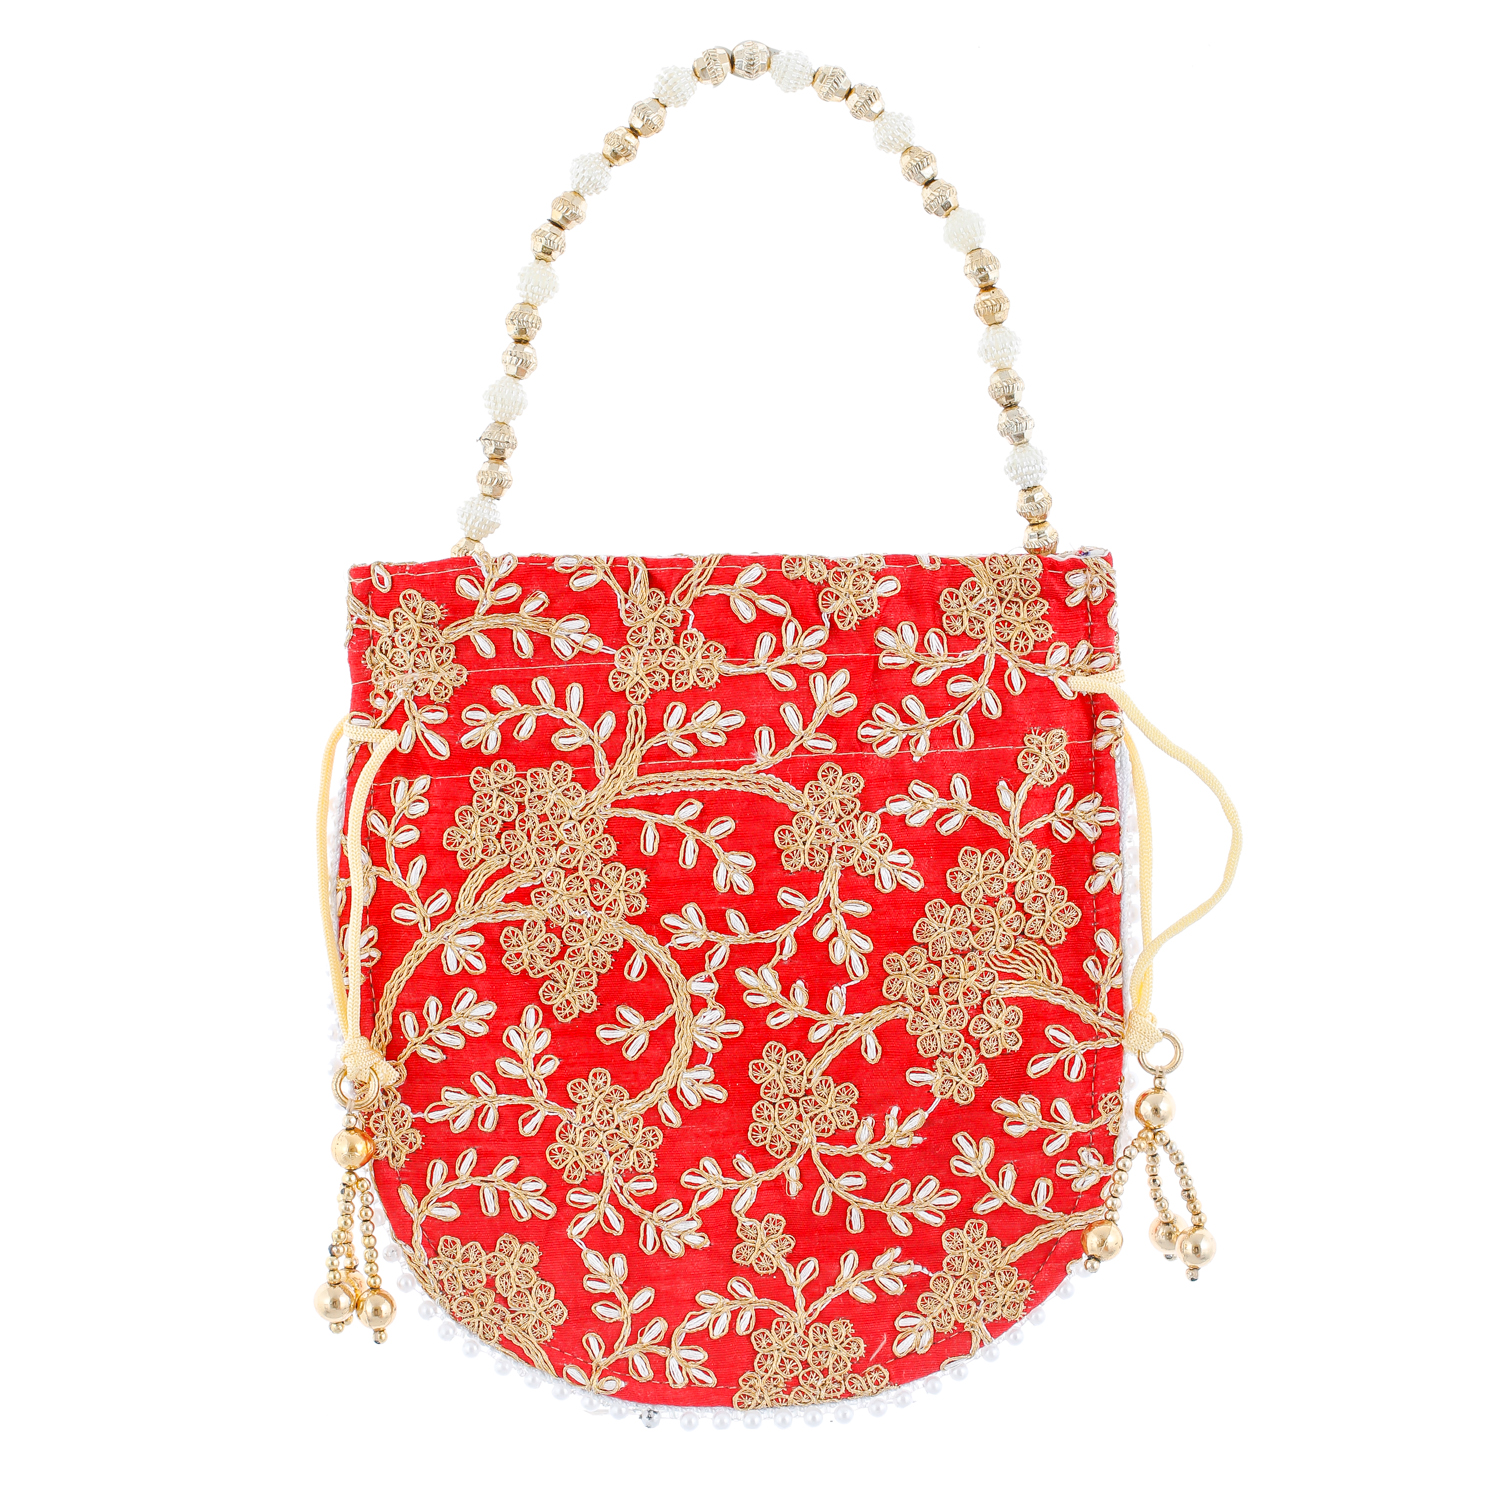 Kuber Industries Ethnic Clutch Silk 2 Pieces Potli Batwa Pouch Bag with Beadwork Gift For Women (Red) - CTKTC23038